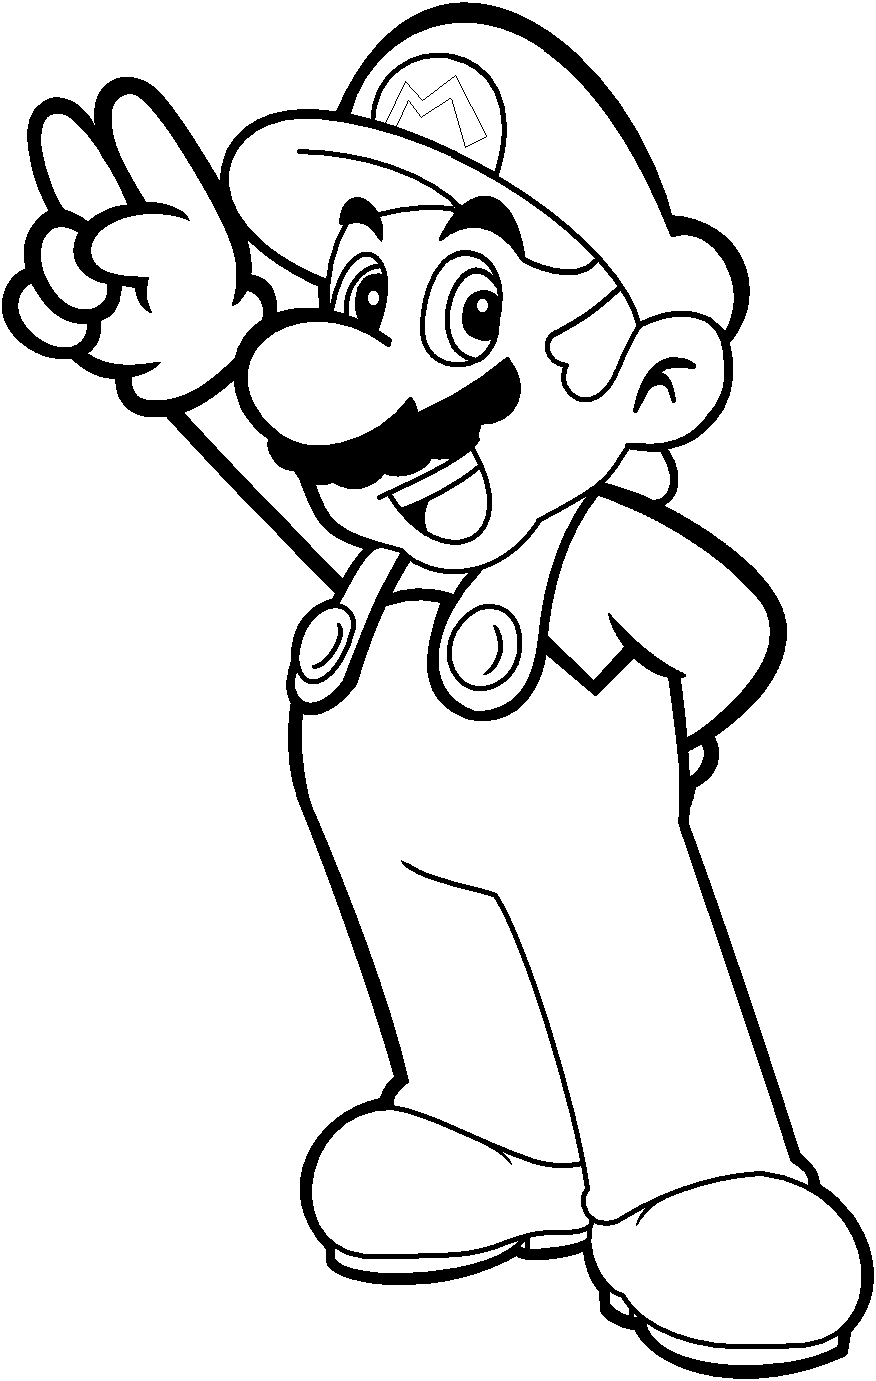 super mario bros printable coloring pages coloring pages mario coloring pages free and printable printable mario pages coloring super bros